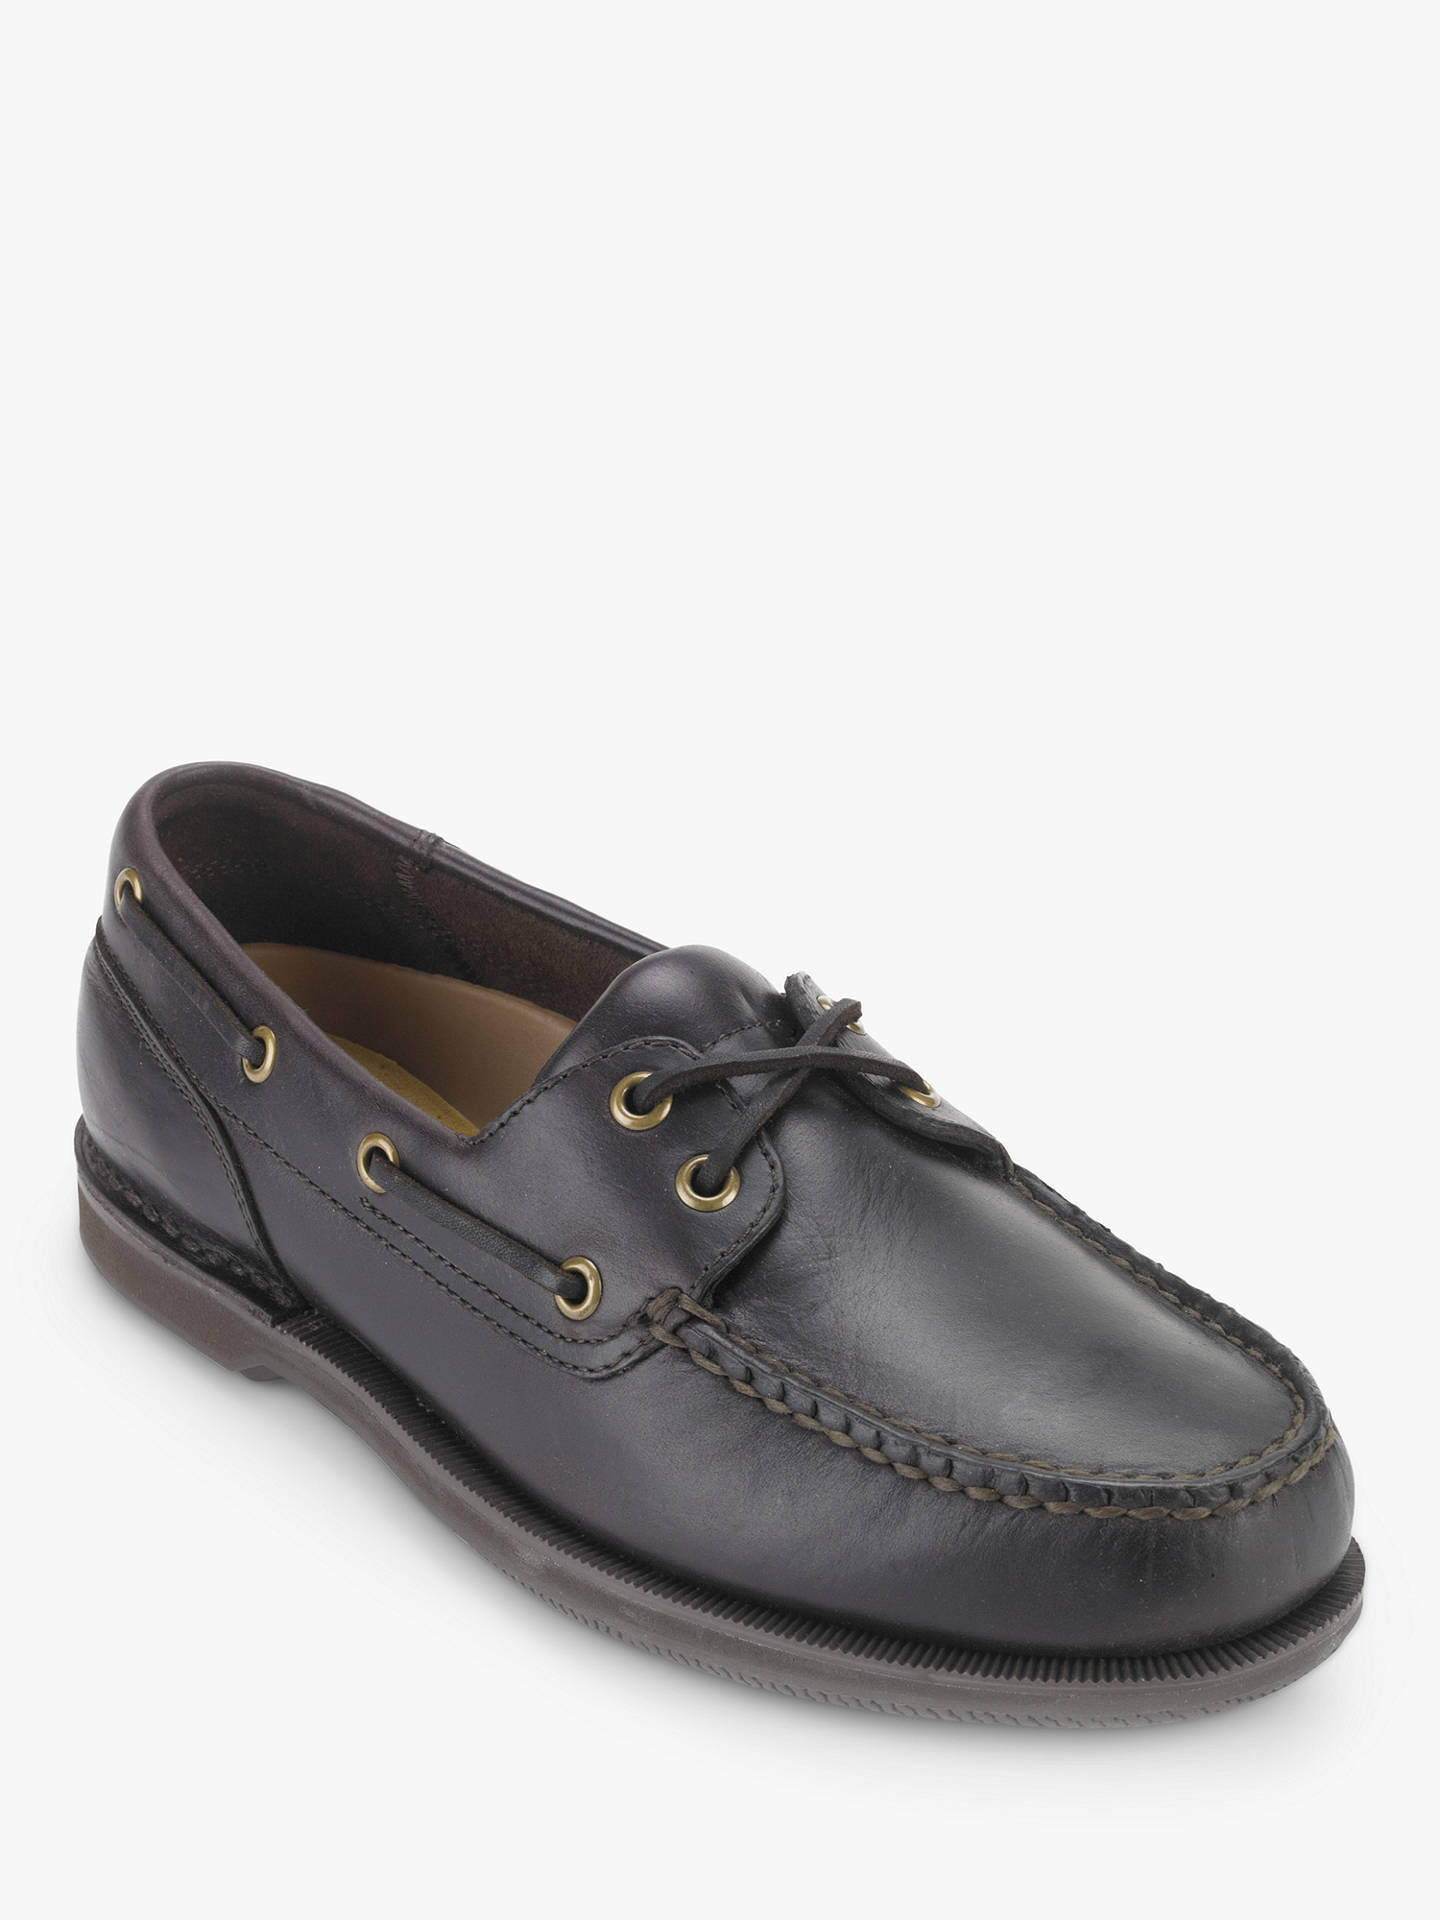 BuyRockport Perth Boat Shoe, Dark Brown, 8 Online at johnlewis.com